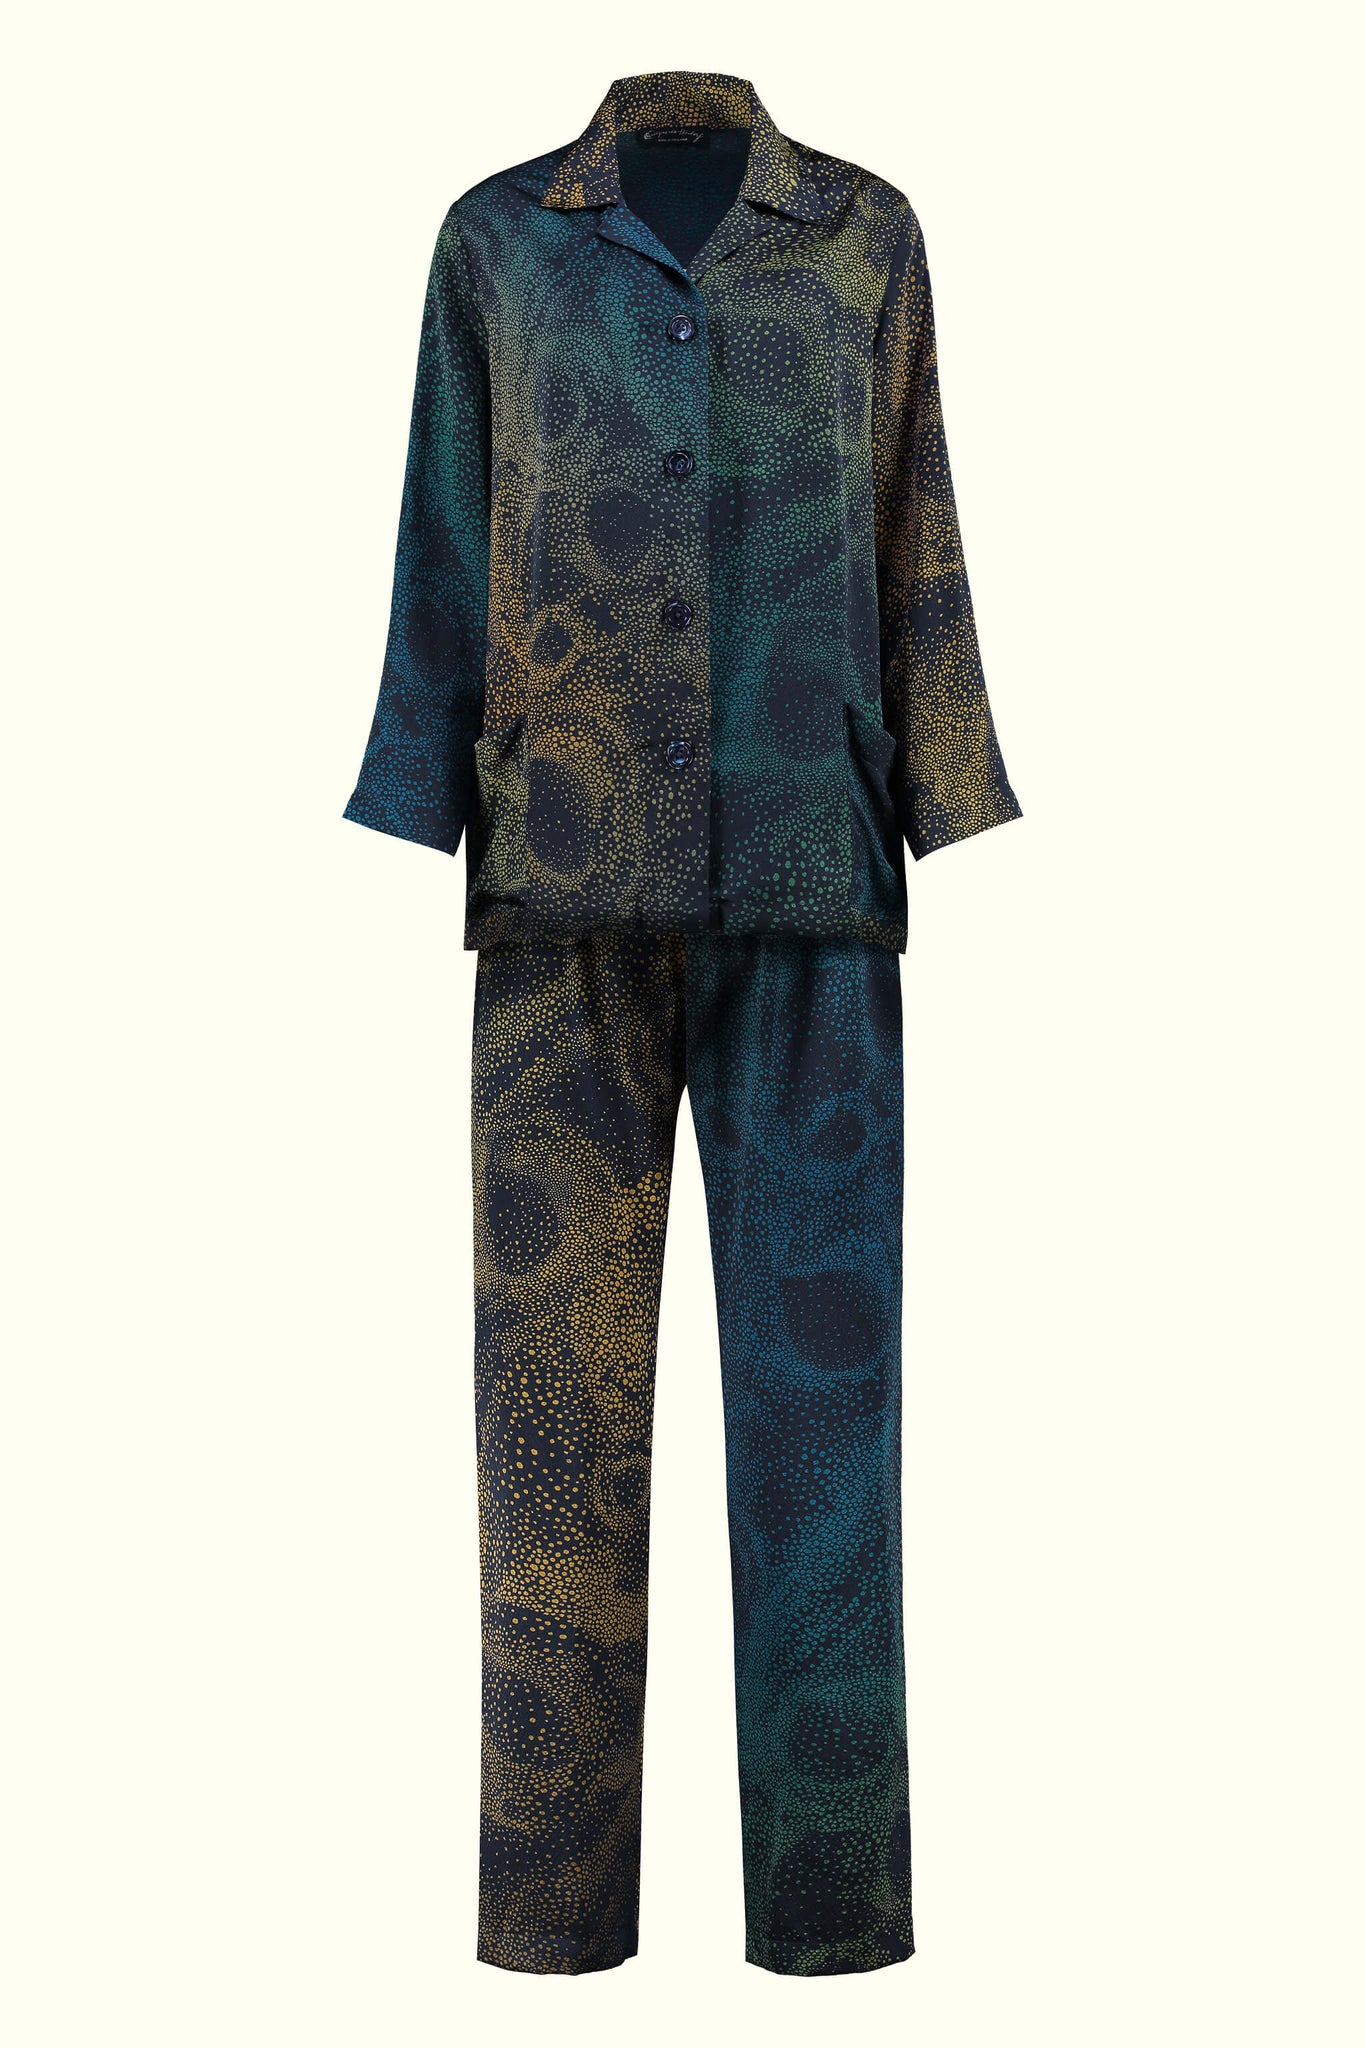 A luxury British silk pyjama set by GVE in navy and gold Aurora print design.